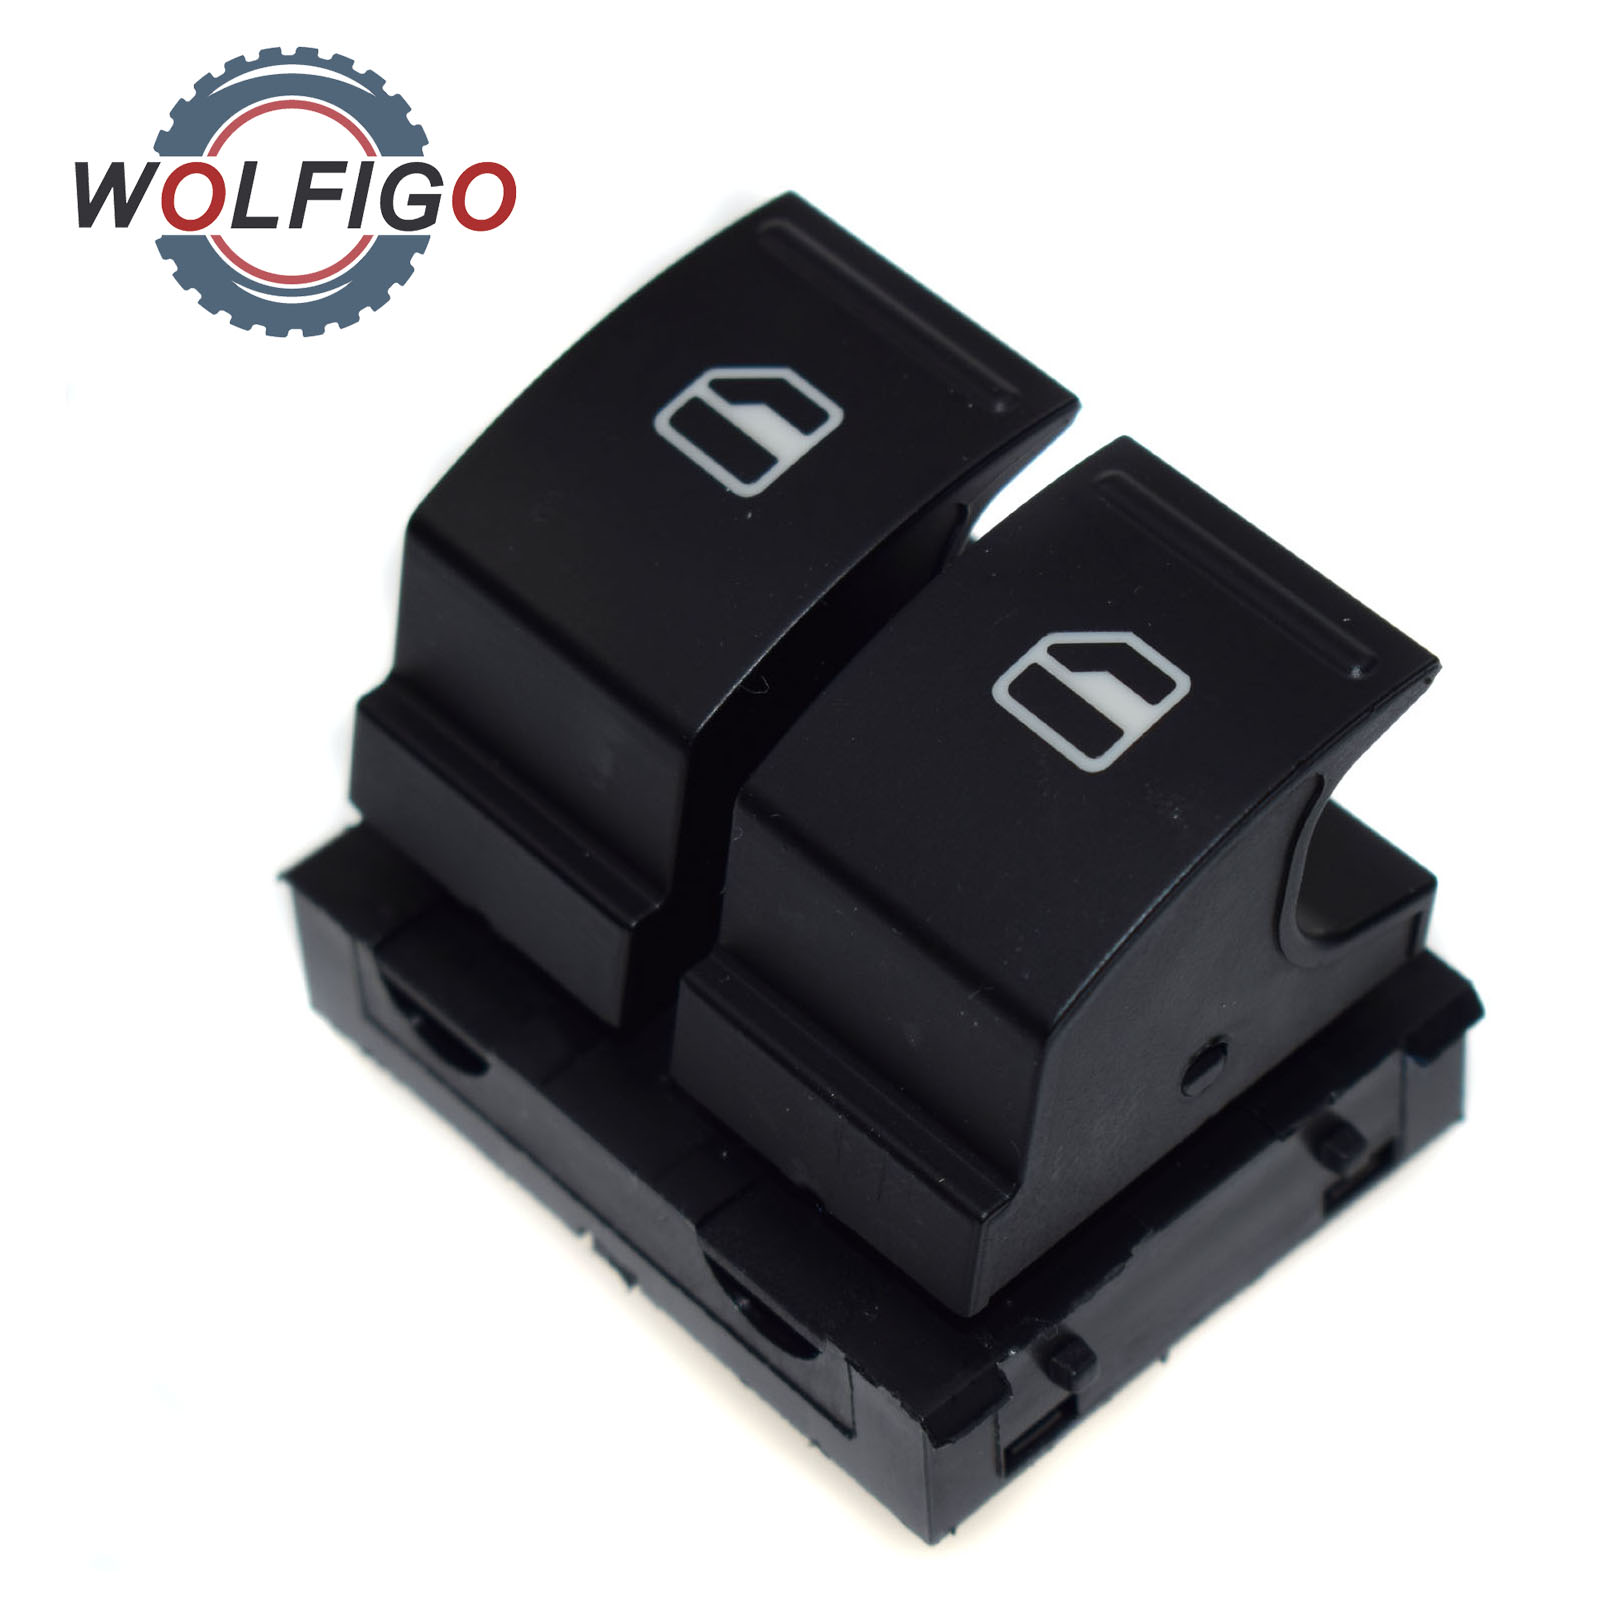 Wolfigo Driver Side Electric Power Window Switch 1k3959857a For Vw 2000 Ranger Siderelayspower Windowsthe Wireing Harness Golf Mk5 Passat B6 Variant Caddy 2k Jetta Eos Plus In Car Switches Relays From